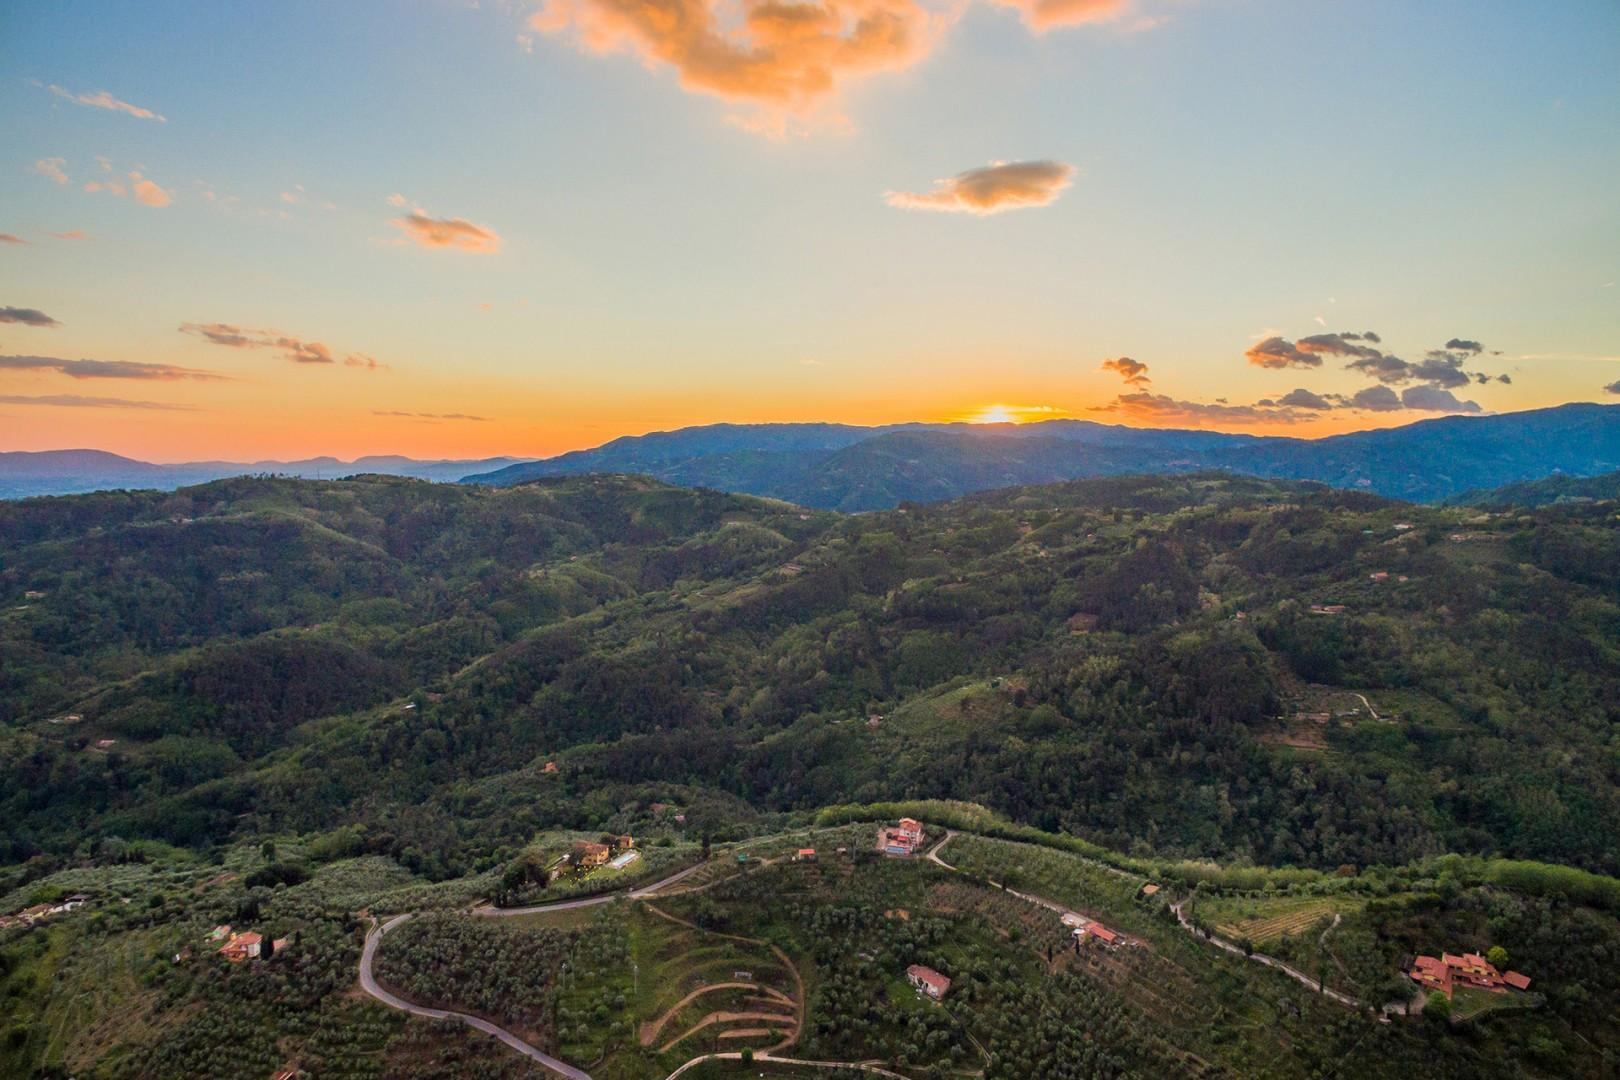 Breathtaking views overlooking the Tuscan countryside.